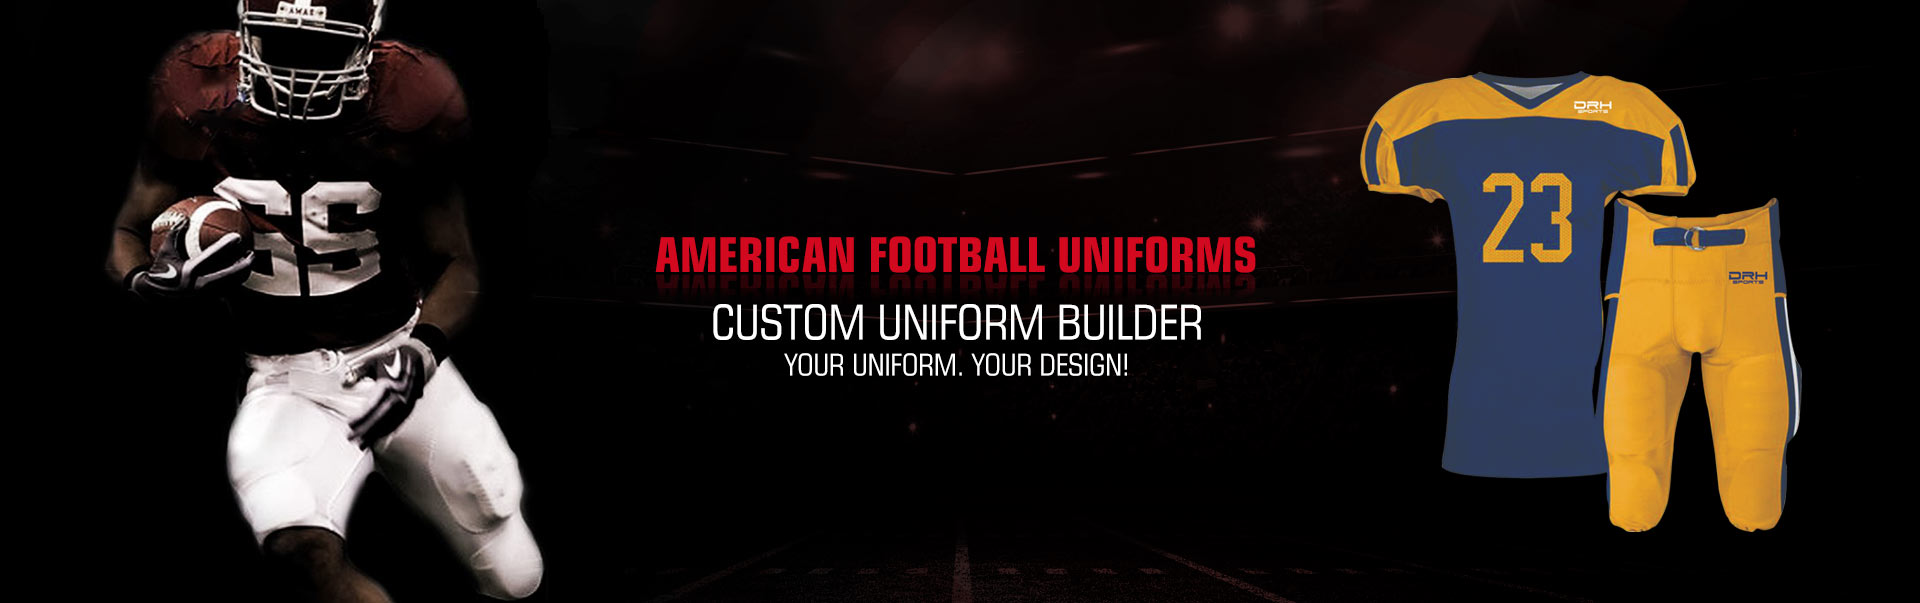 American Football Uniform Wholesaler, Suppliers in San Francisco